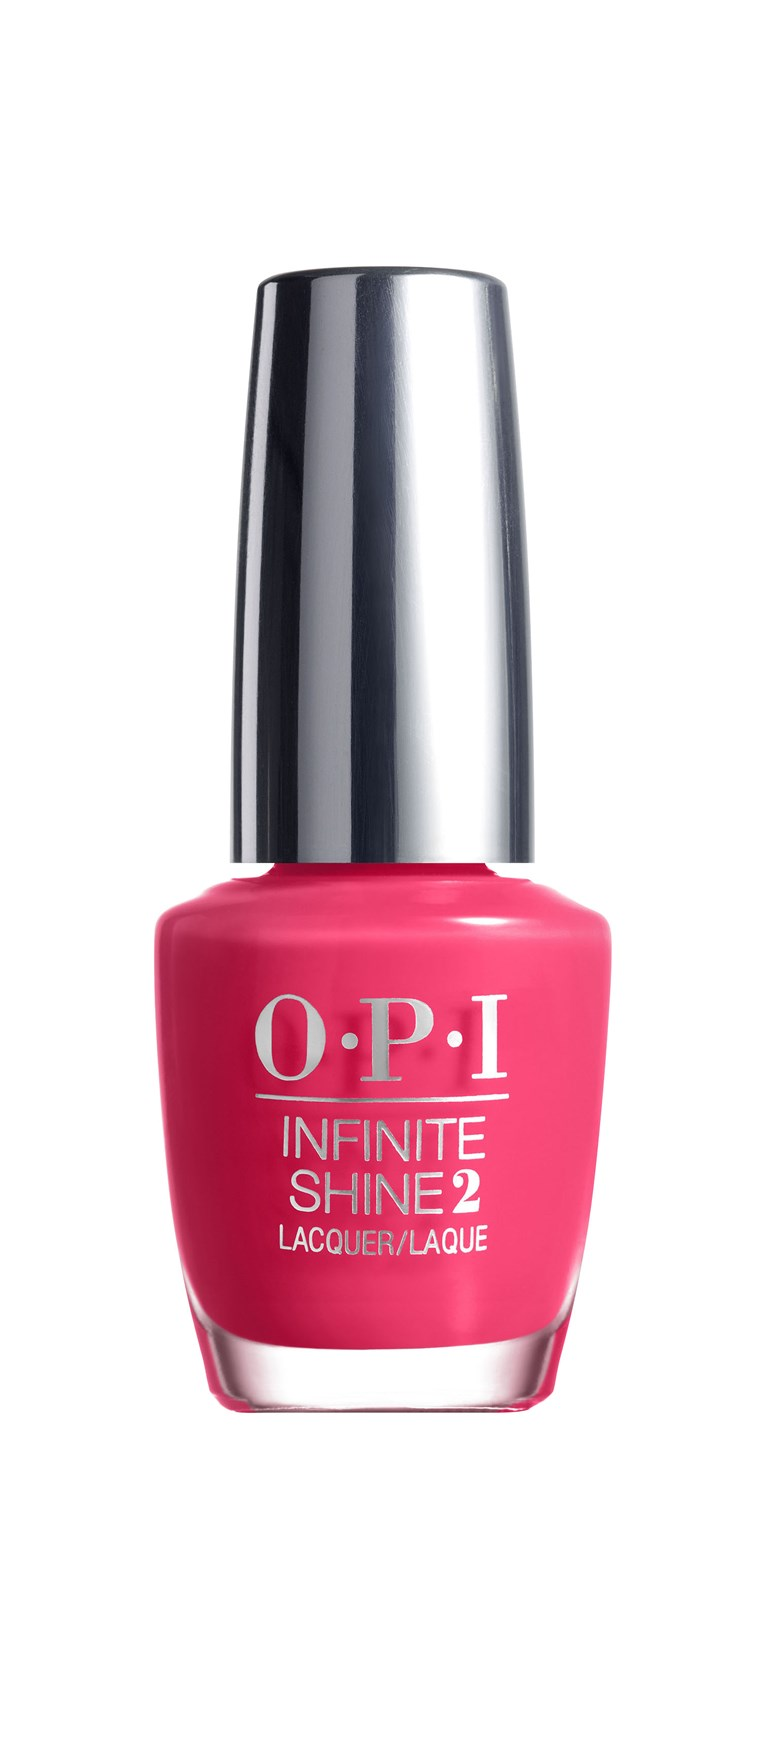 OPI Infinite shine